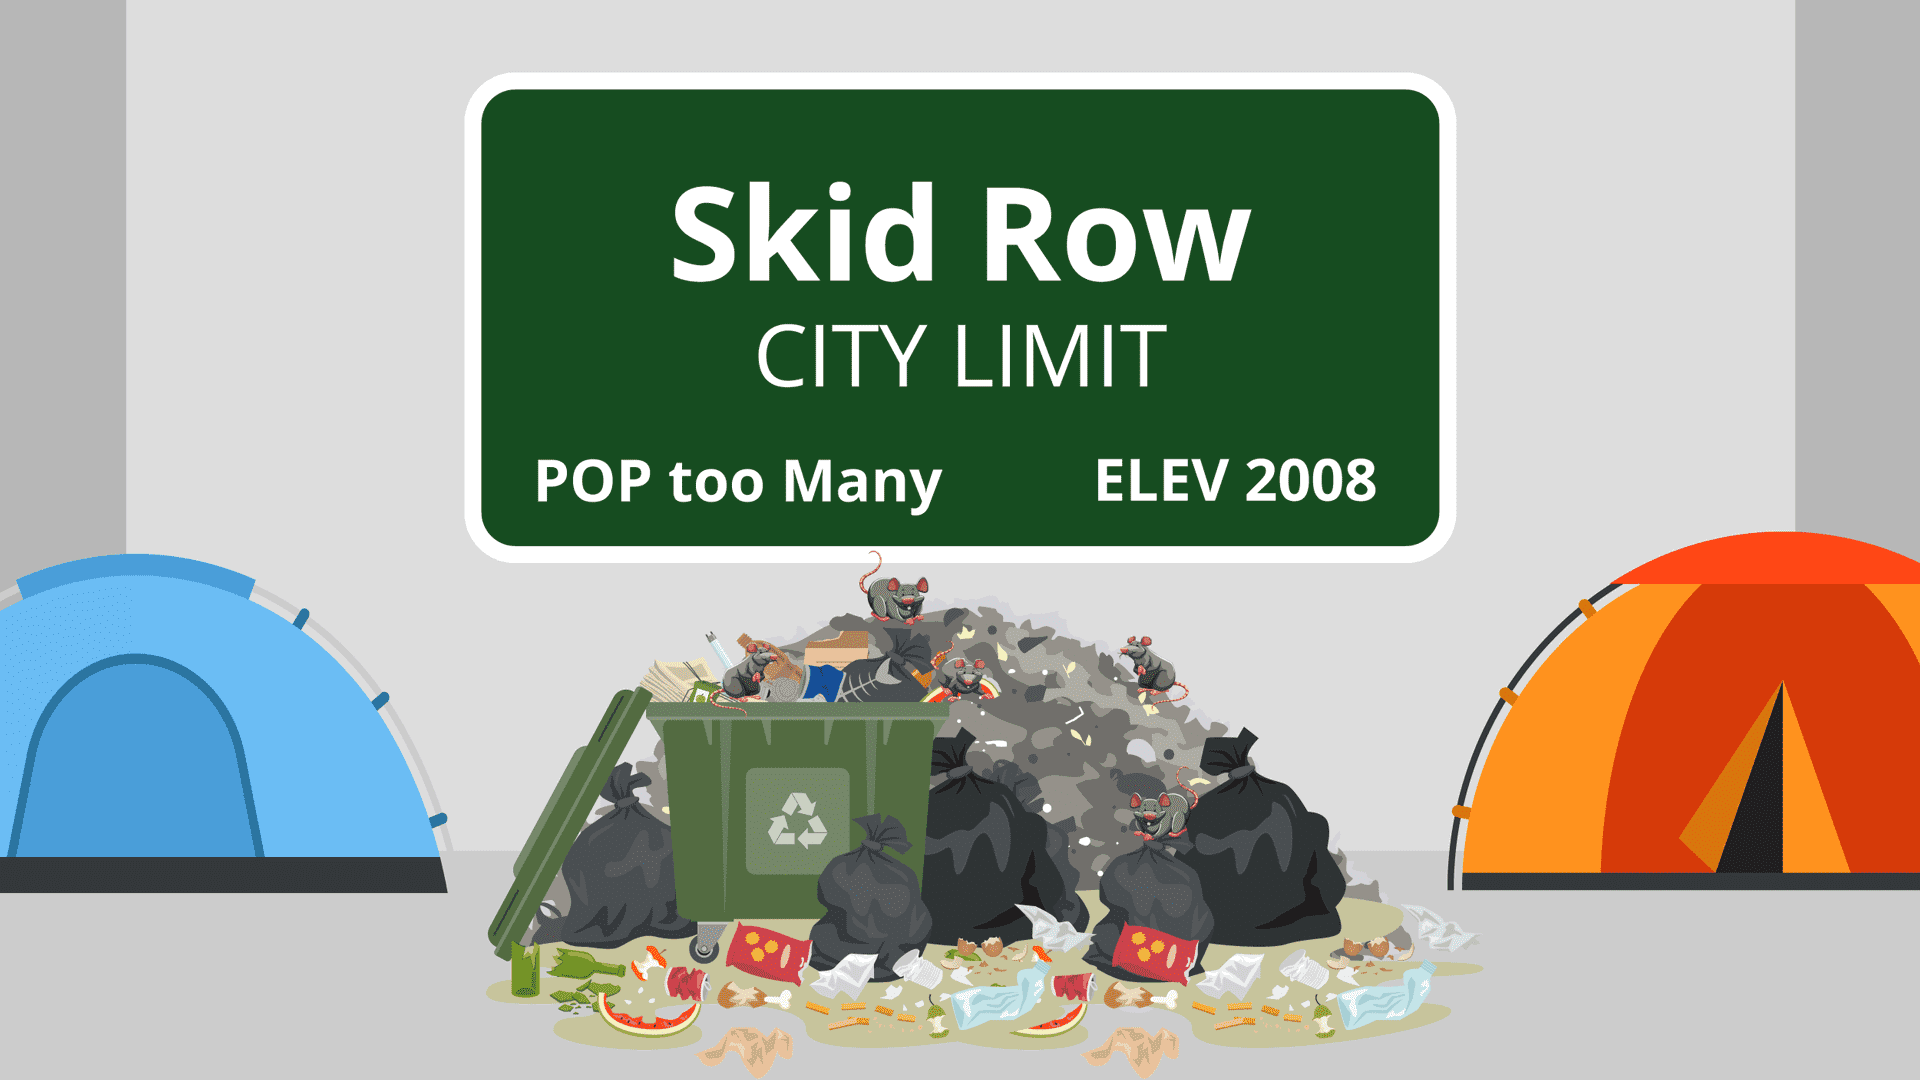 Illustration of trash and rats at Skid Row in Los Angeles, CA.